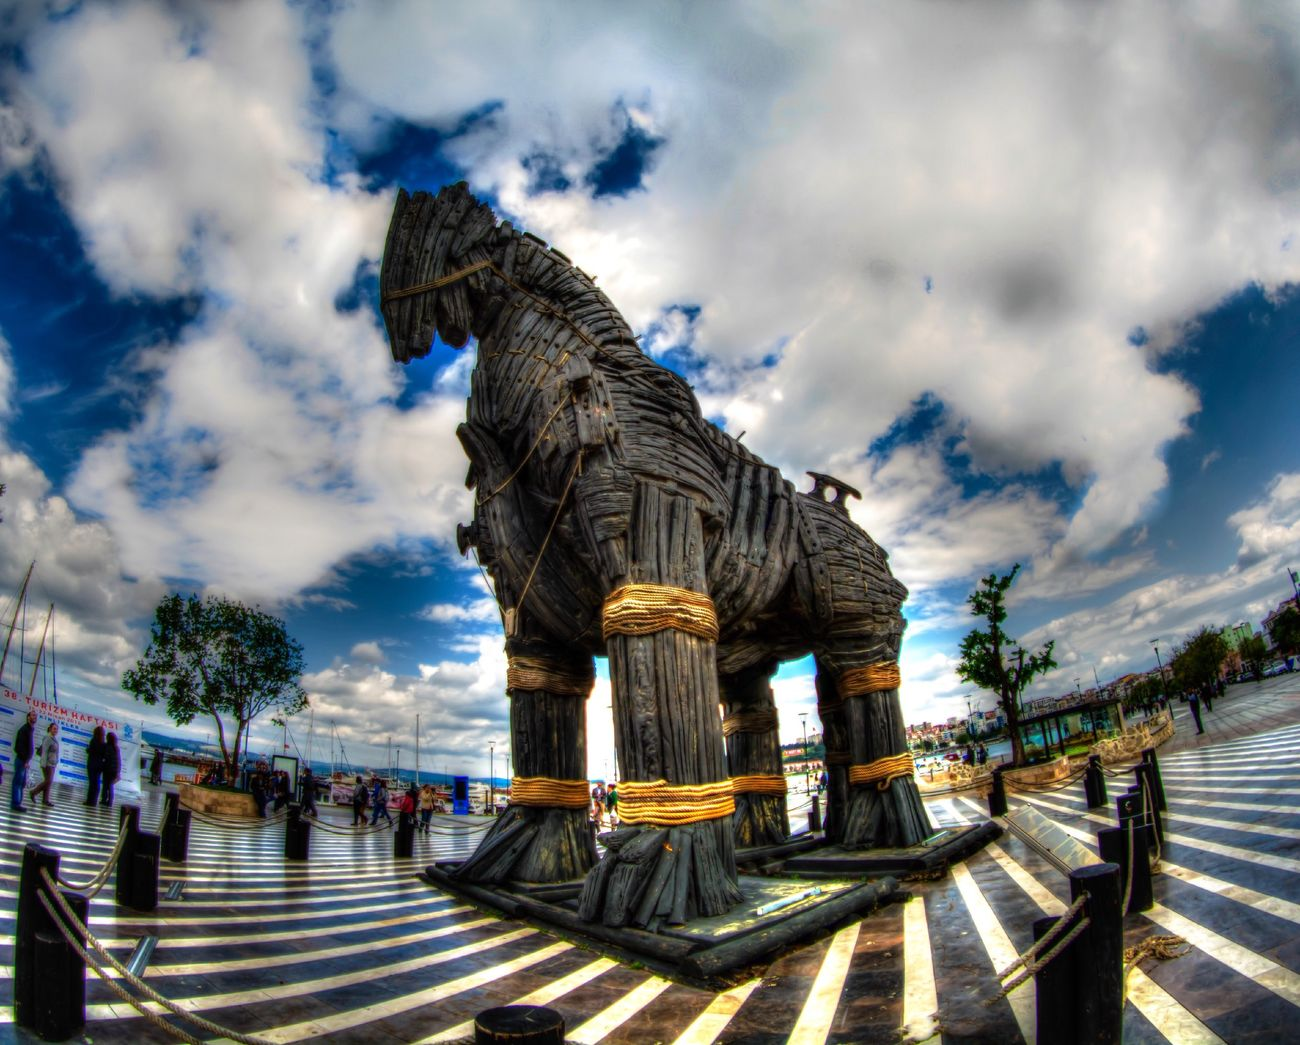 Taking Photos Hollywood Trojan Horse in Canakkale First Eyeem Photo Enjoying Life Relaxing